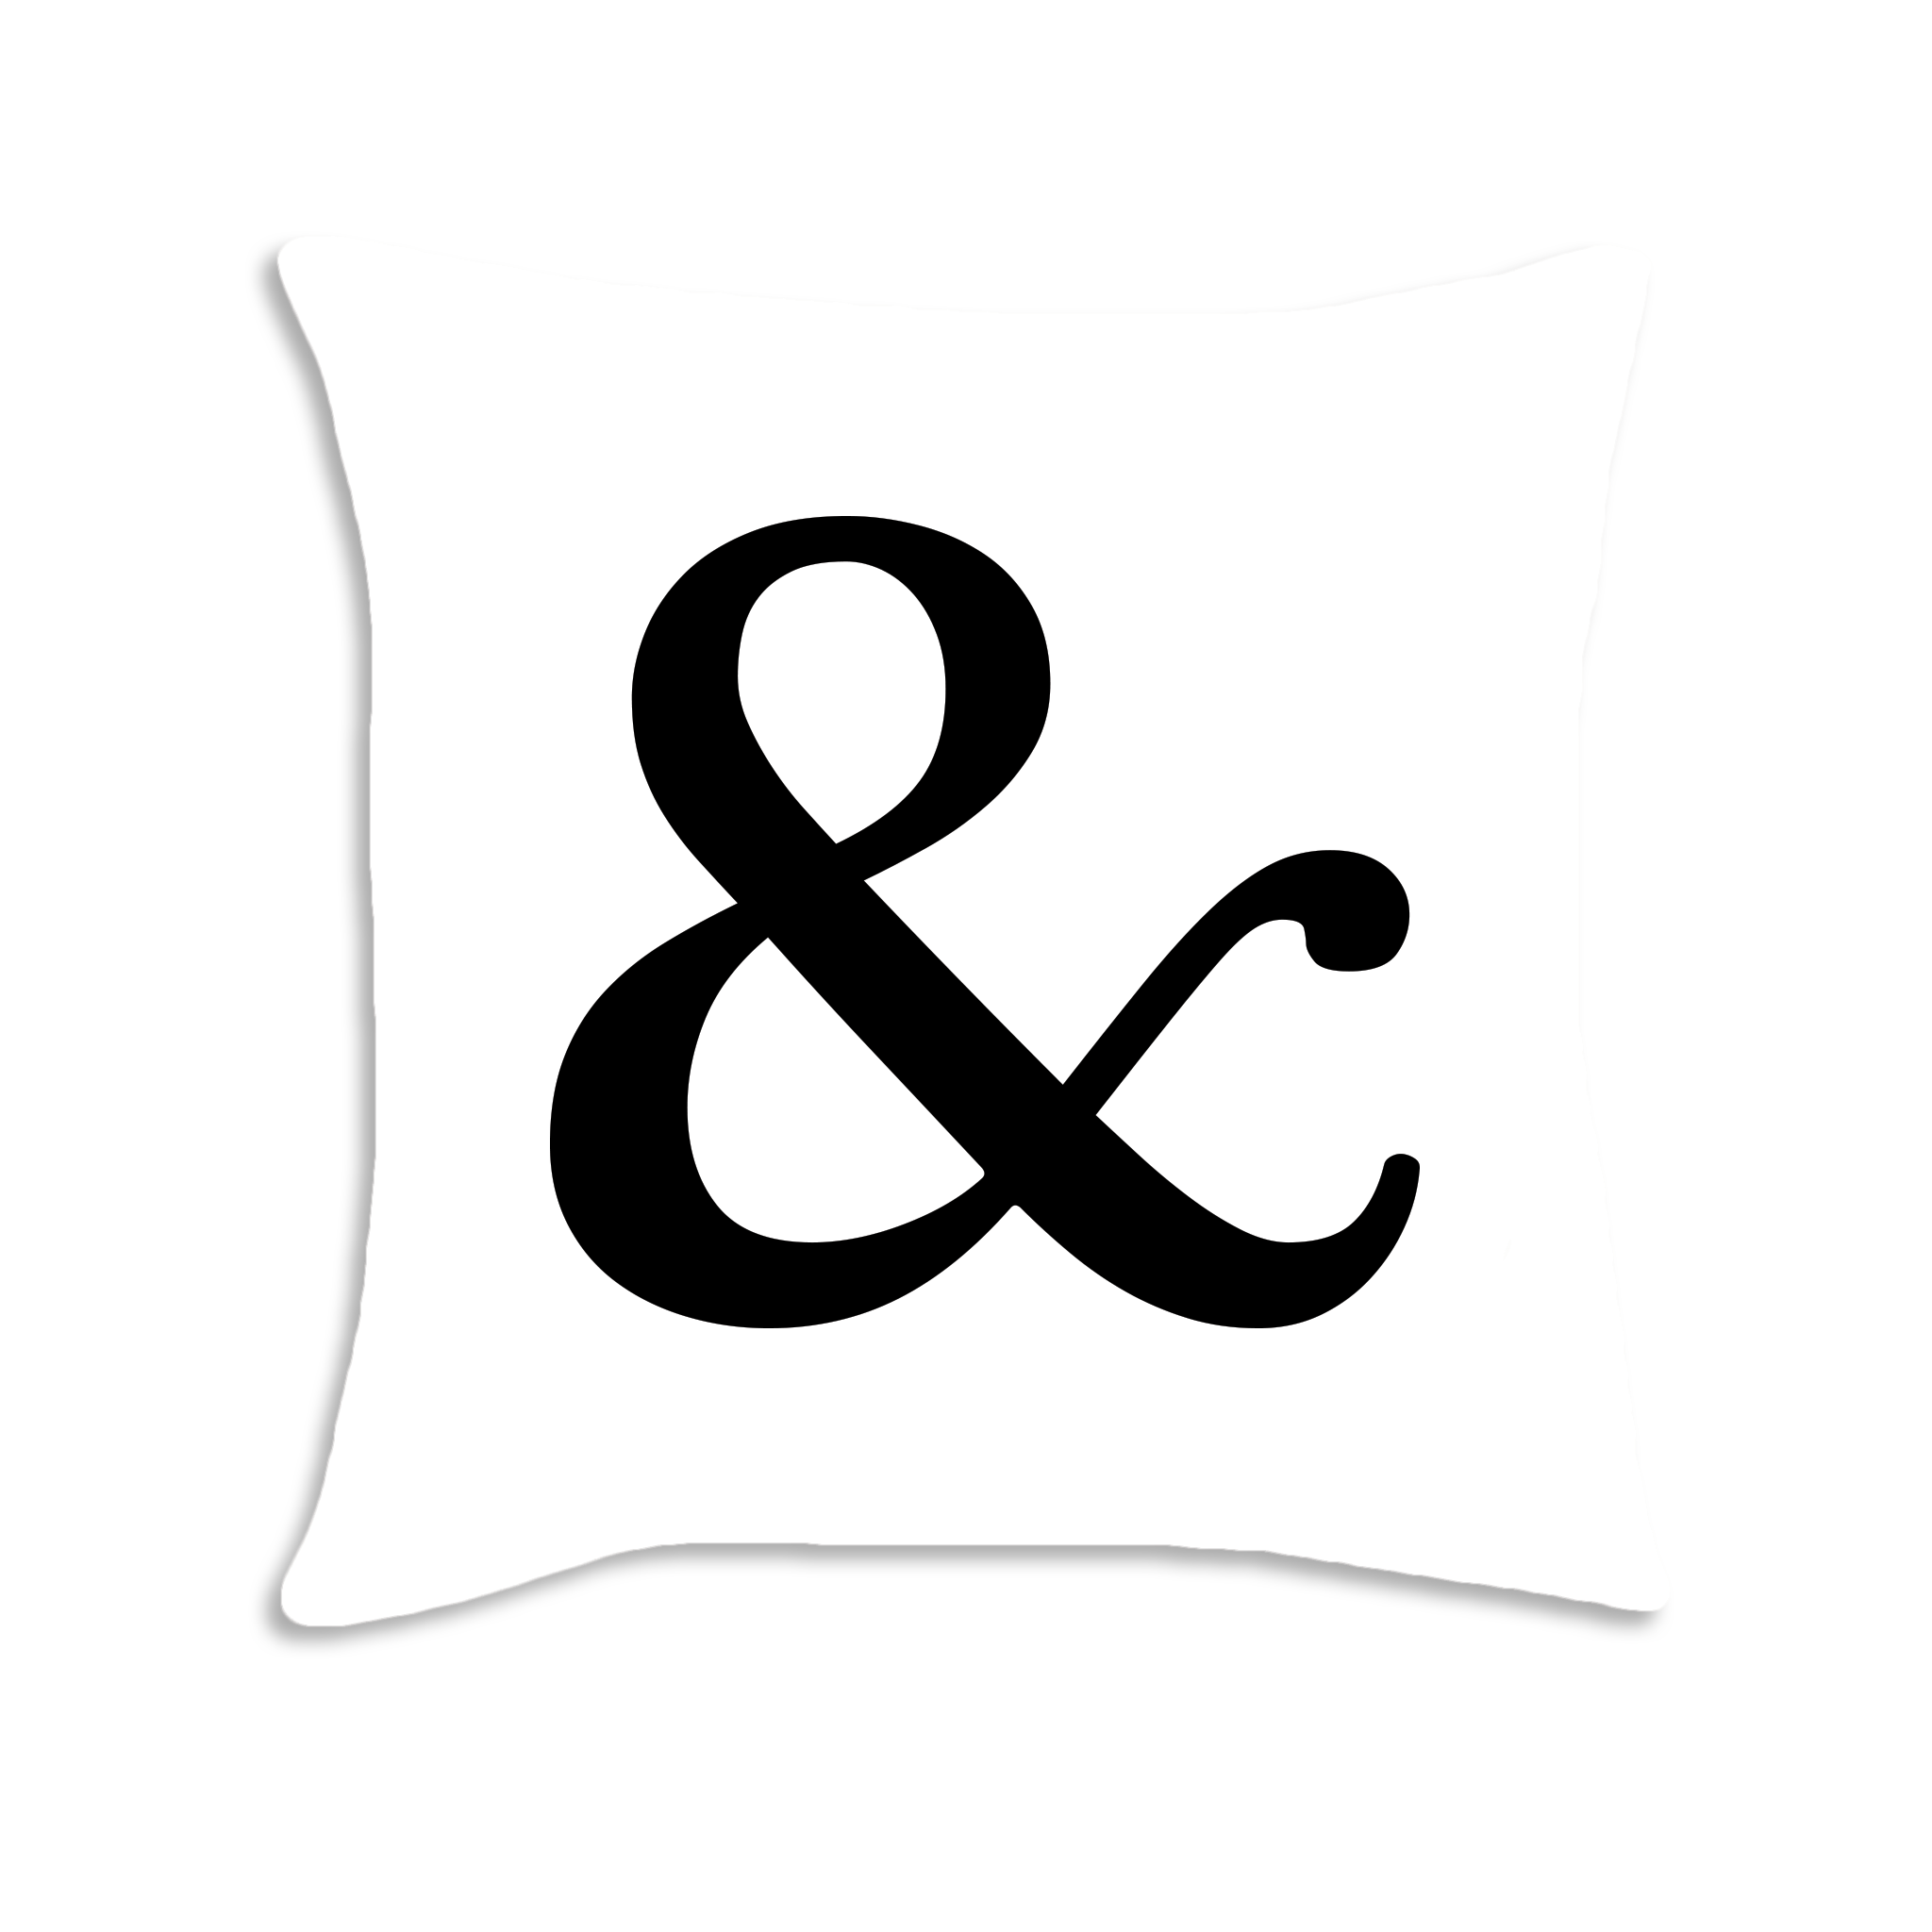 Fancy ampersand png. Serif font decorative throw